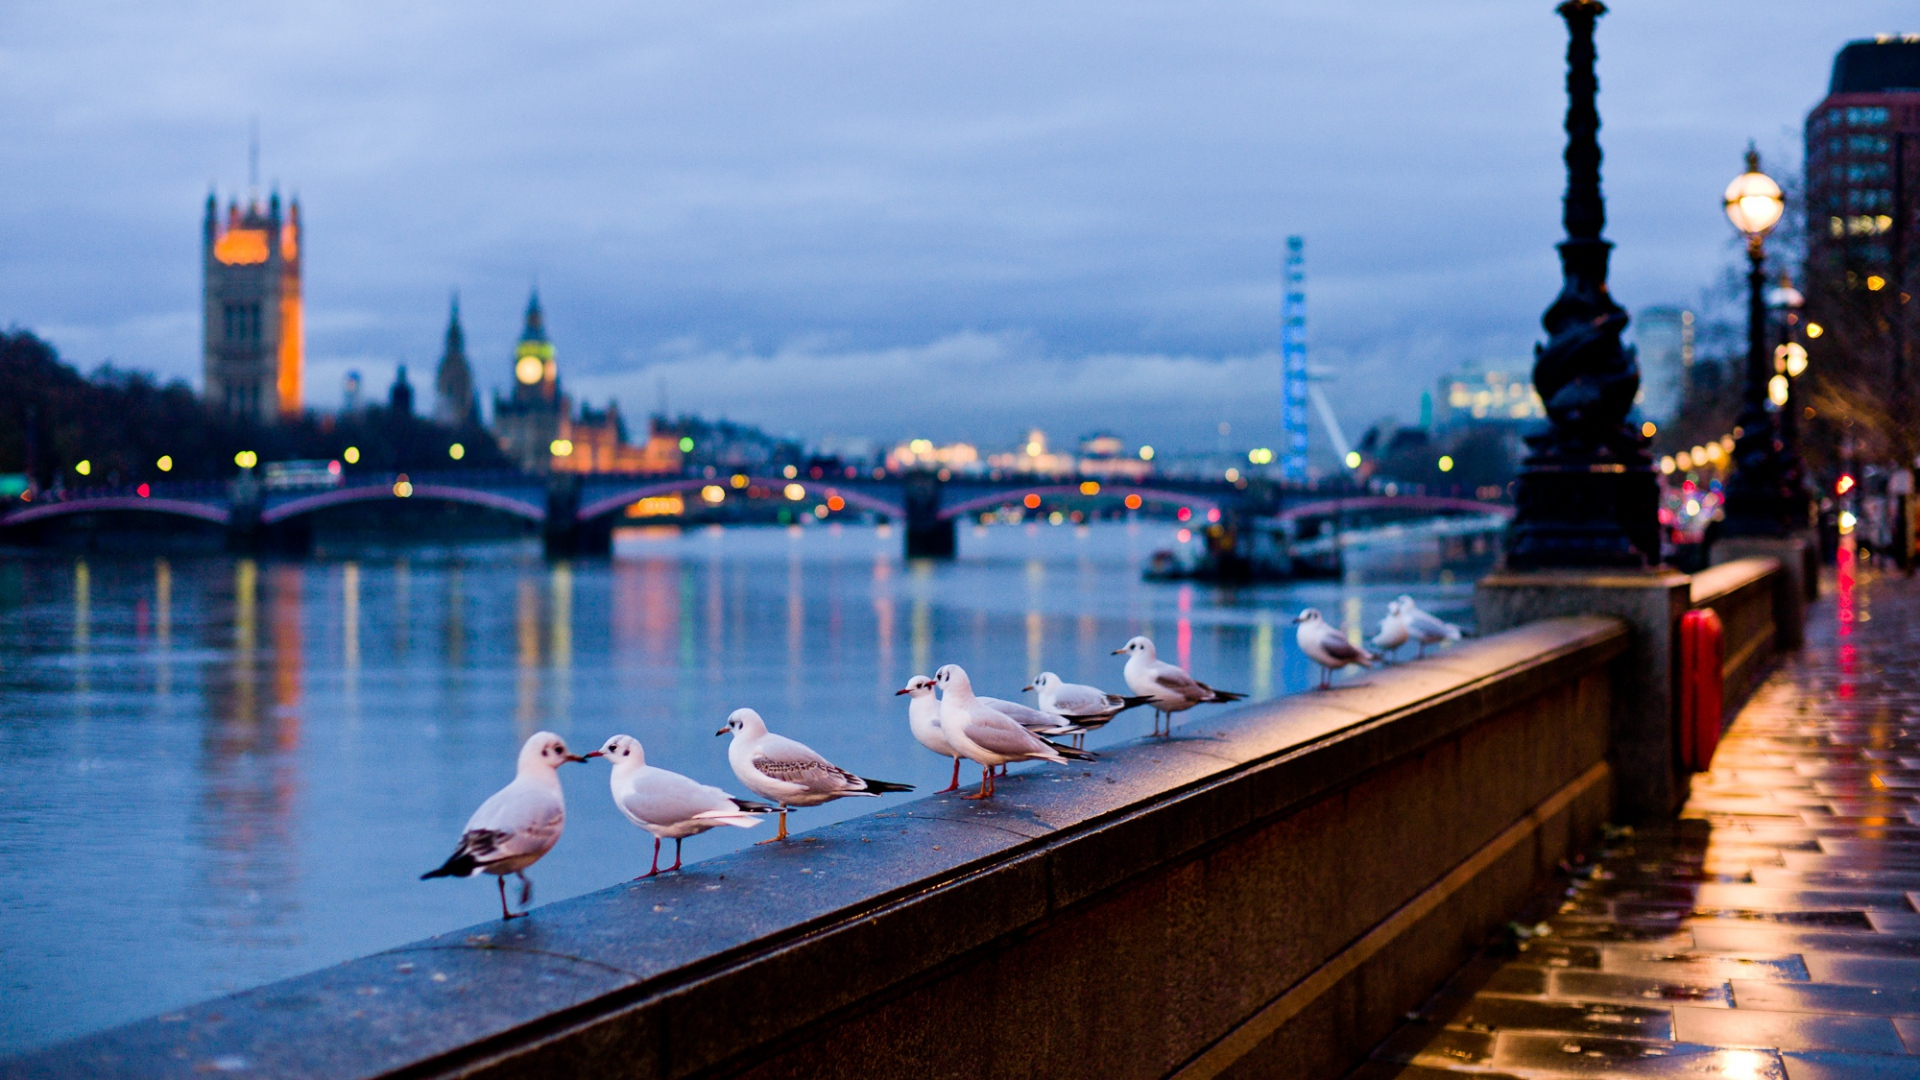 download wallpaper 1920x1080 city, london, england, street, river